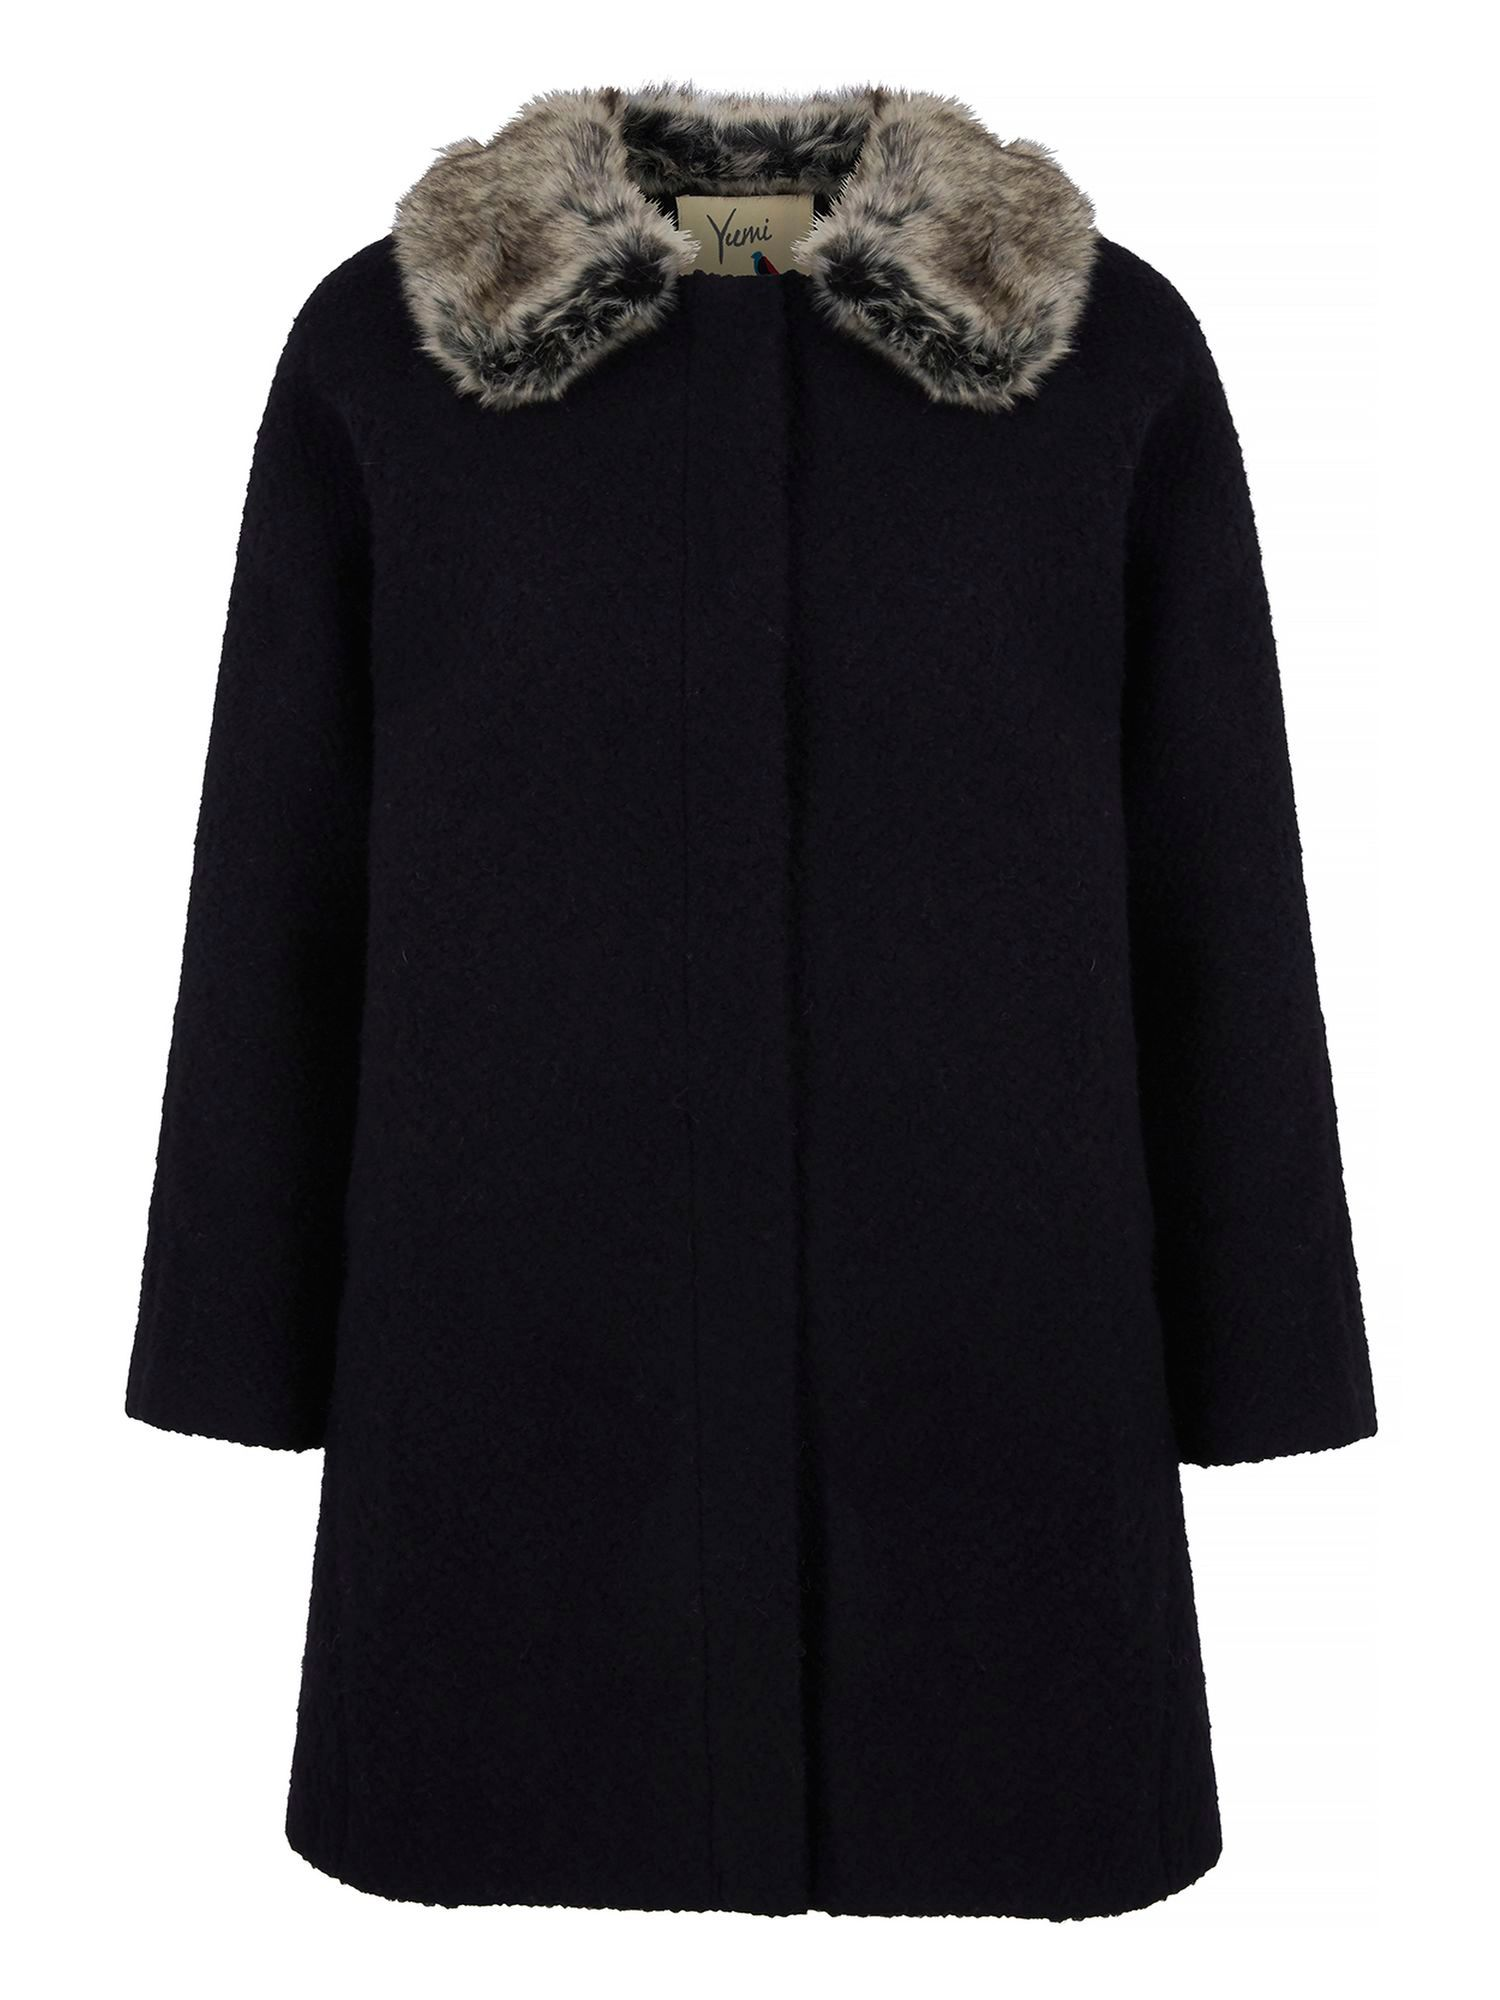 Shop 1960s Style Coats and Jackets Yumi Faux Fur Collar Swing Coat £65.00 AT vintagedancer.com